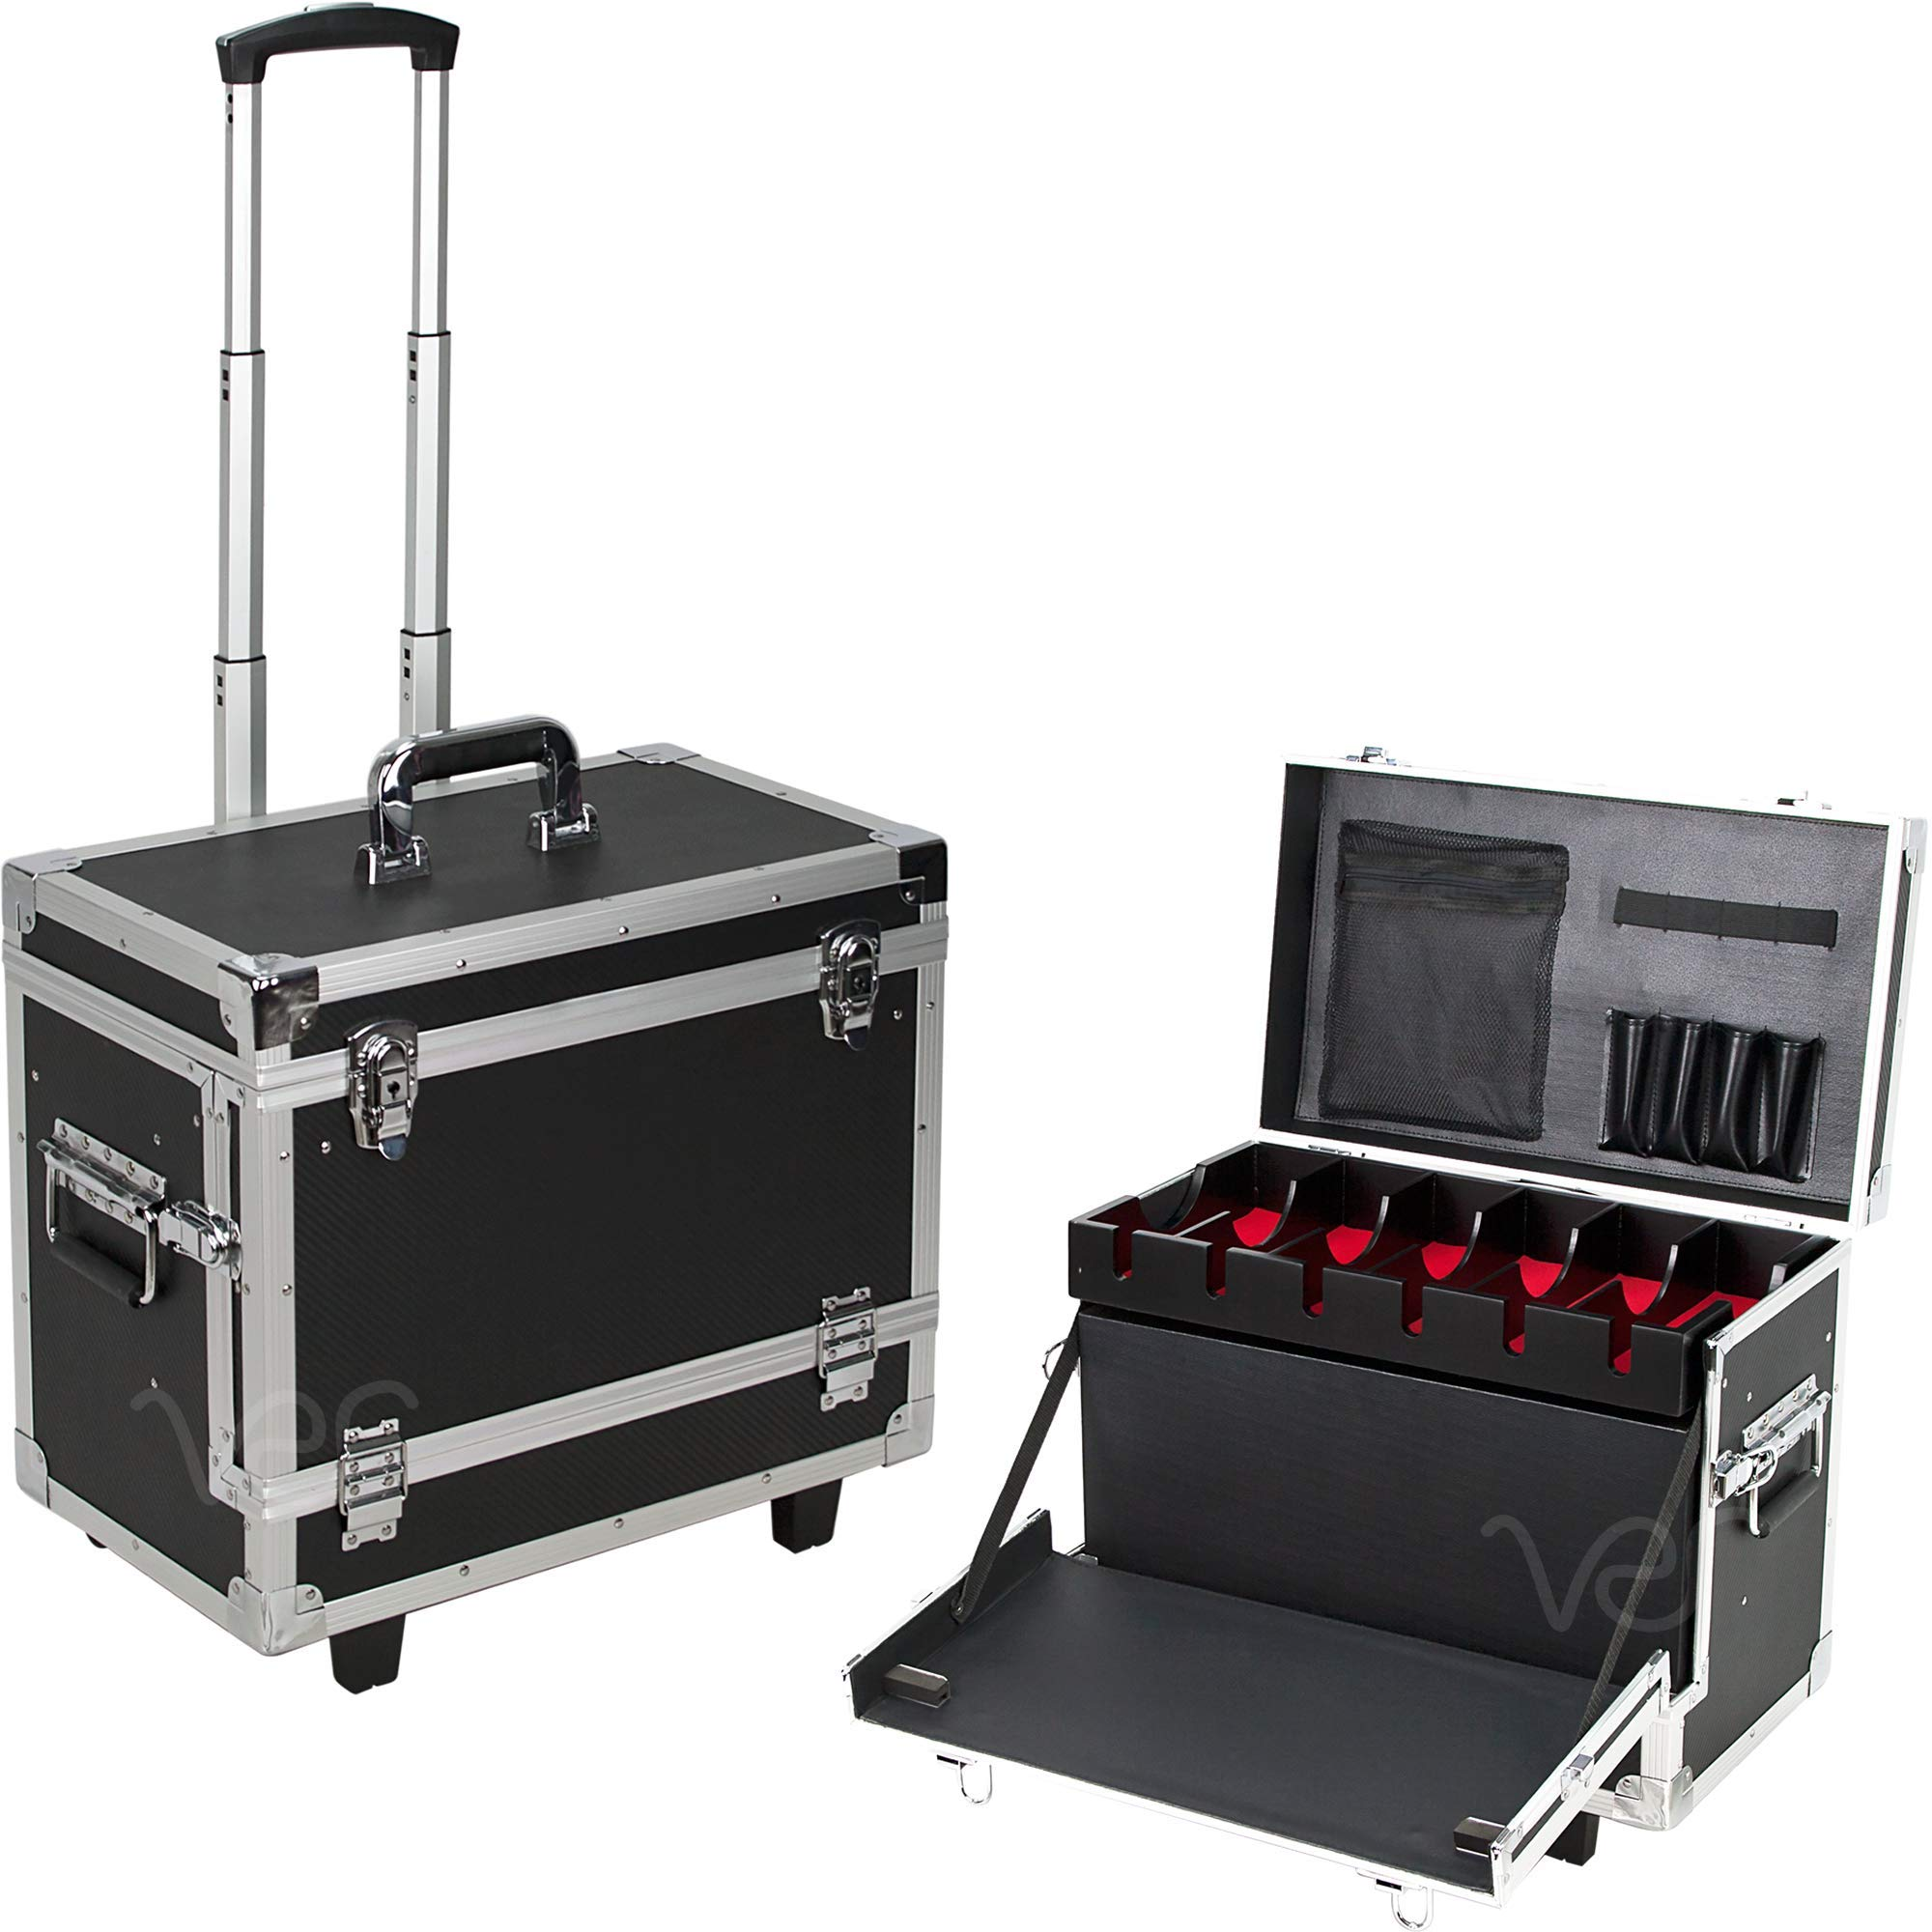 Professional New Black Fiber Finish Aluminium Rolling Barber Case Salon Tool Box by Ver Beauty. 19'' x 11'' x 15.5'' contains Barber Supplies - Clippers, Hair Styling Tools, Bottles and more